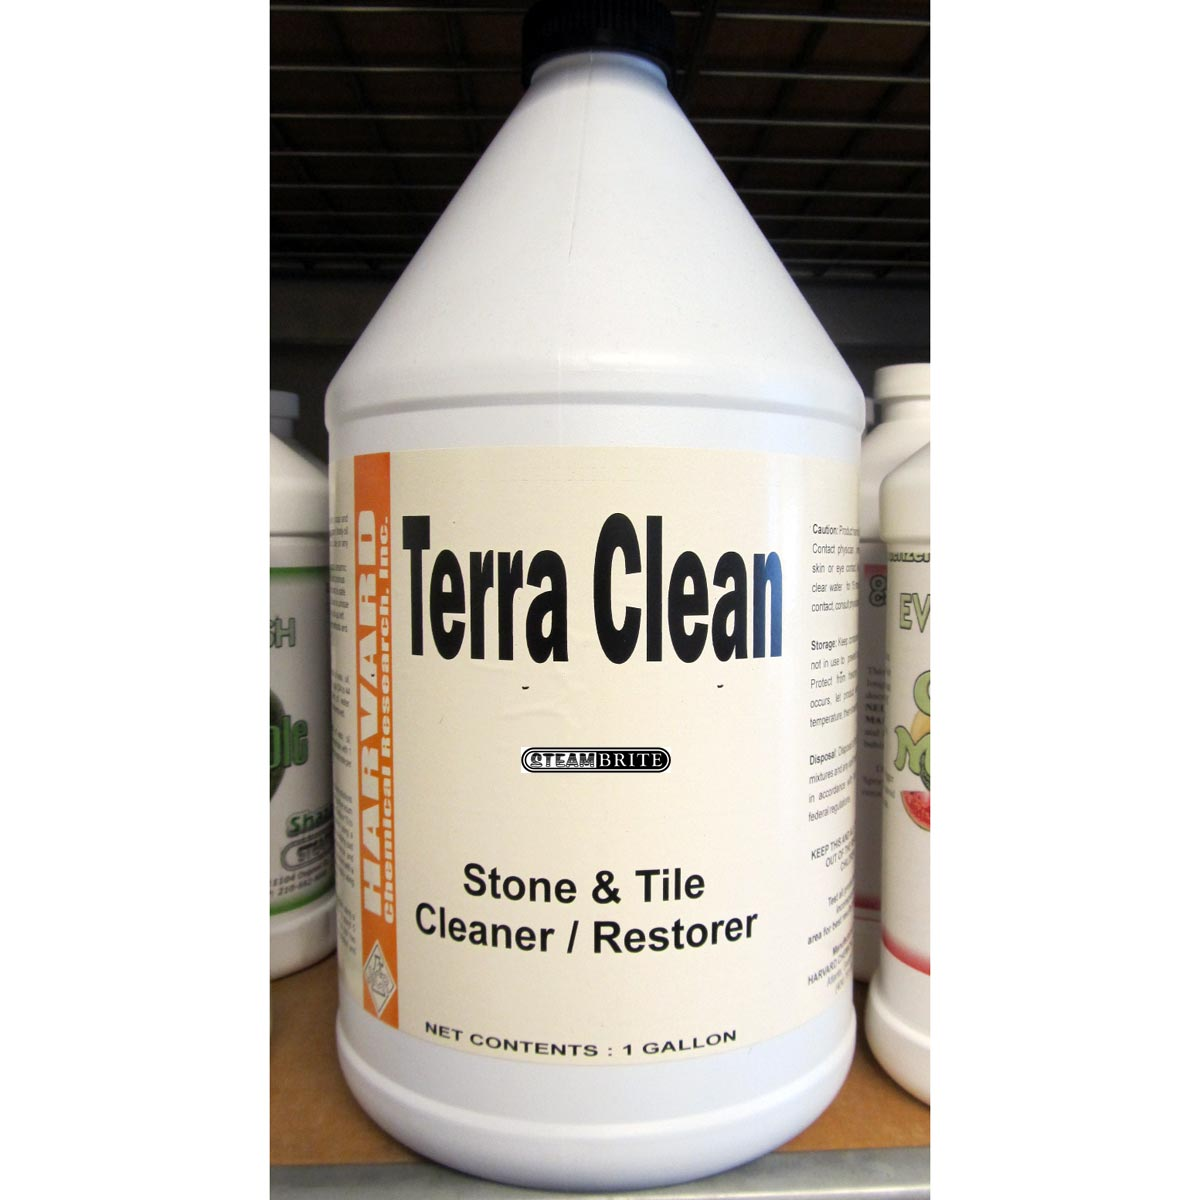 Harvard Chemical Terra Clean Neutral pH Stone and Tile Cleaner and Restorer 899104